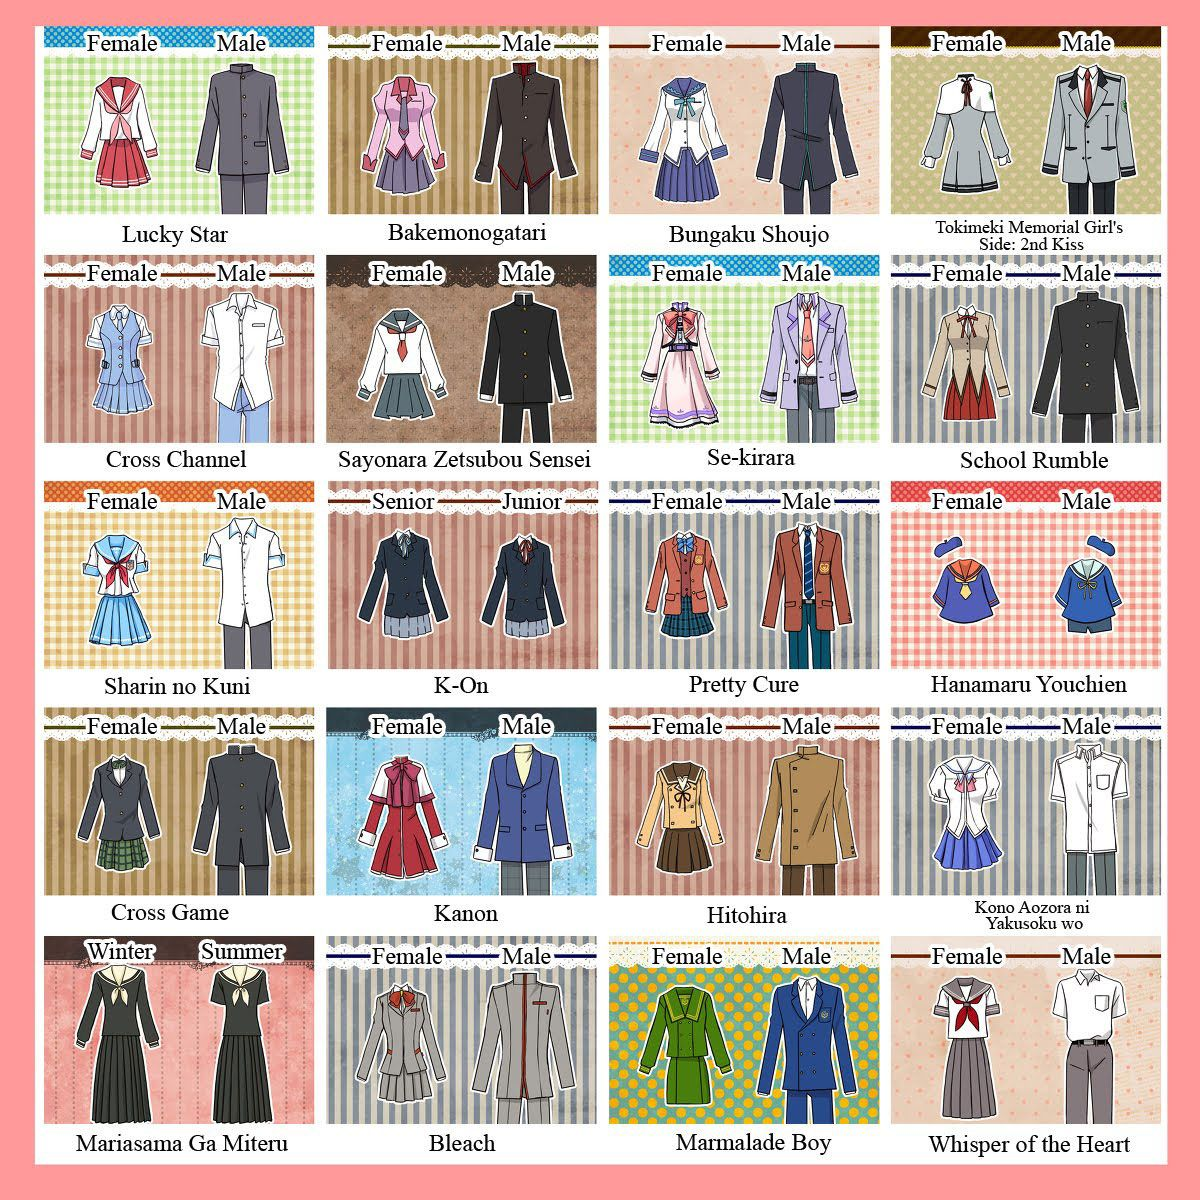 School uniforms in popular anime series 1/2. See other